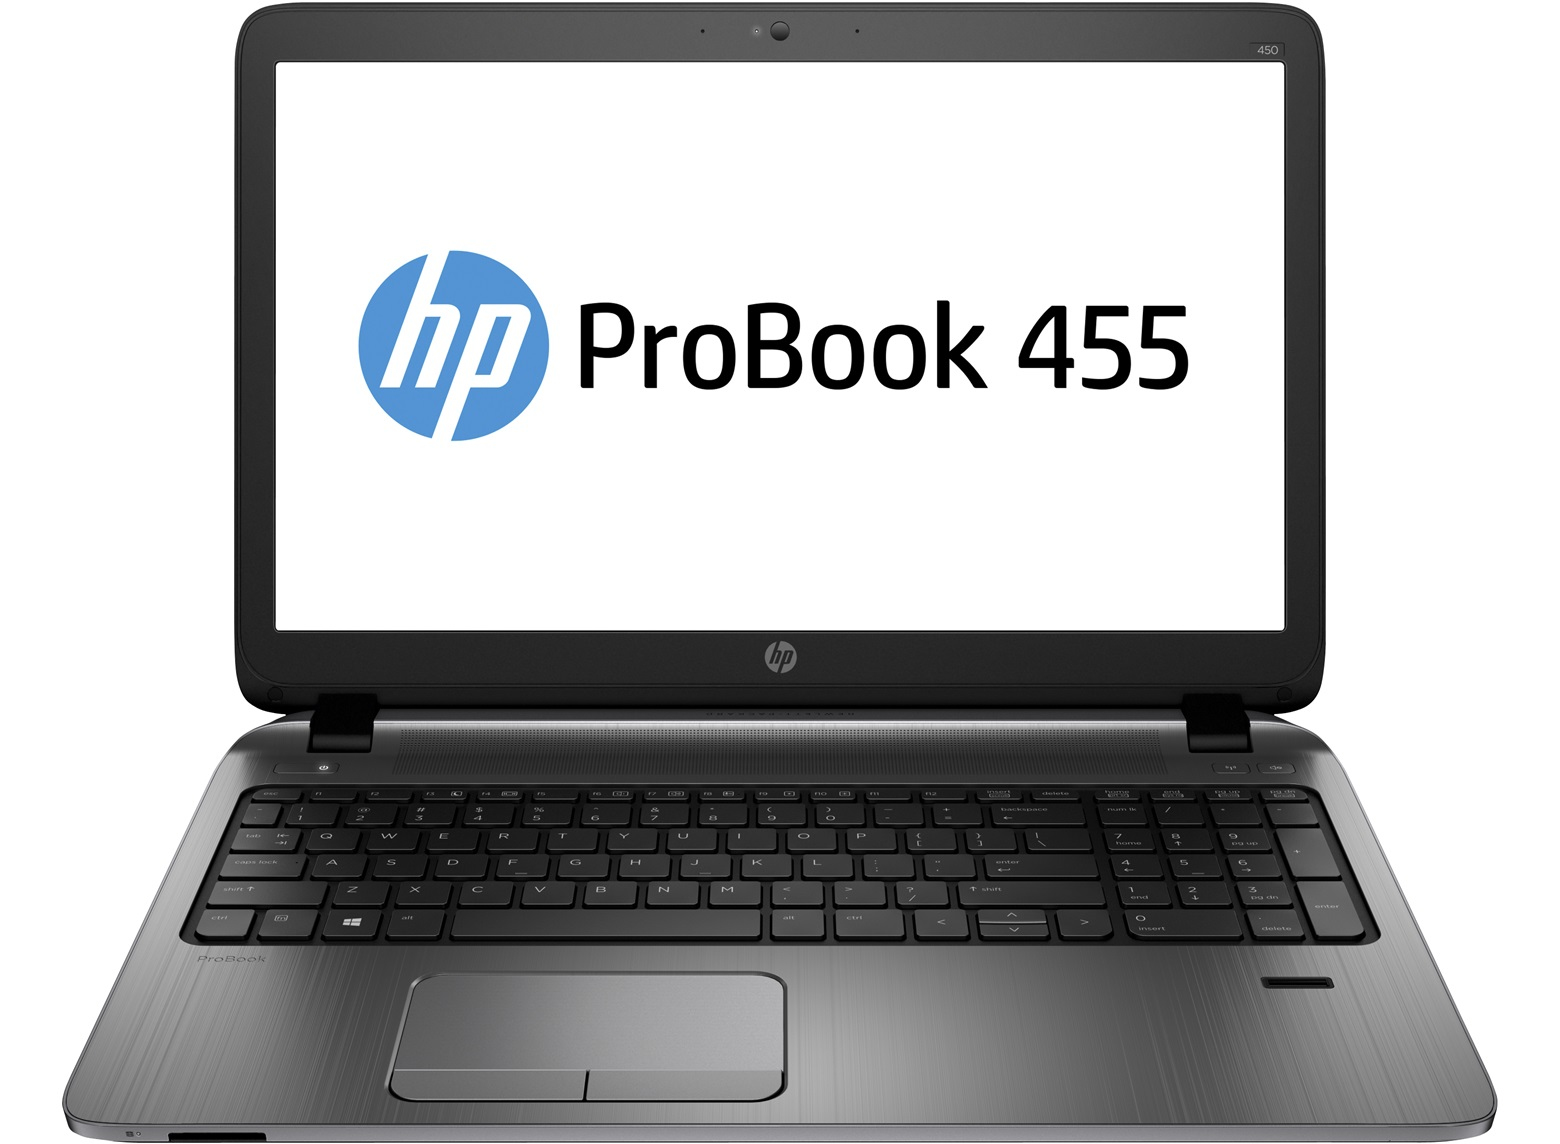 HP ProBook 455 G2 G6W44EA QC A8-7100 4GB 500GB DVDRW 15.6IN BT CAM Win 7/8.1 Pro